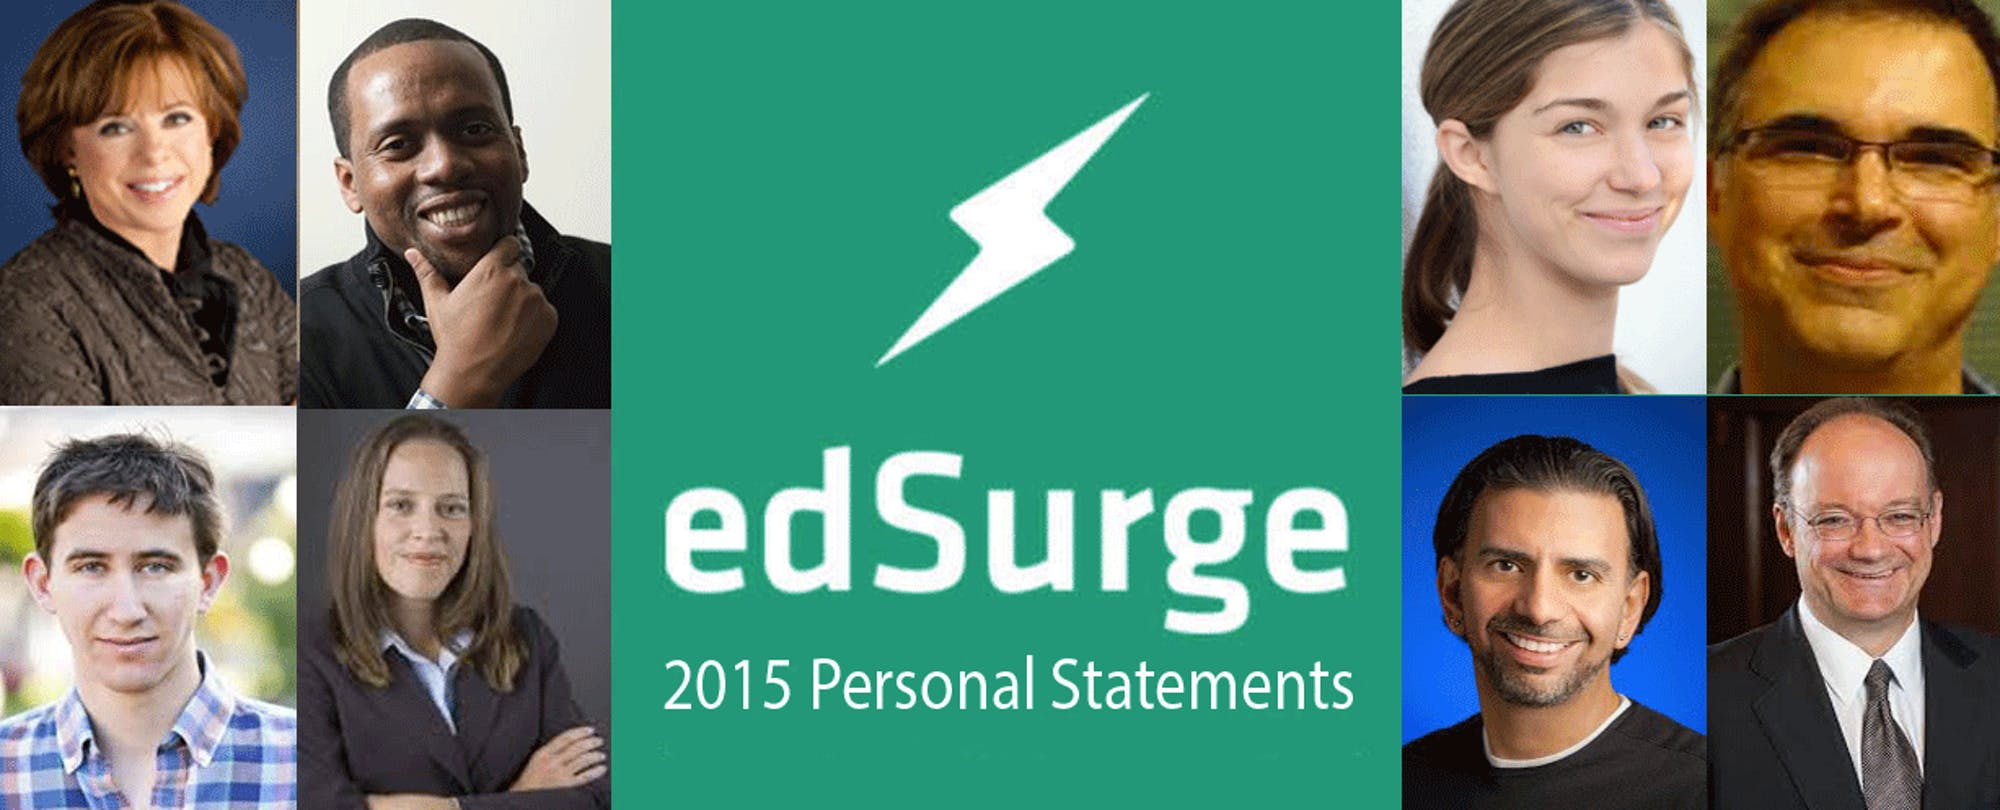 EdSurge 2015 Personal Statements